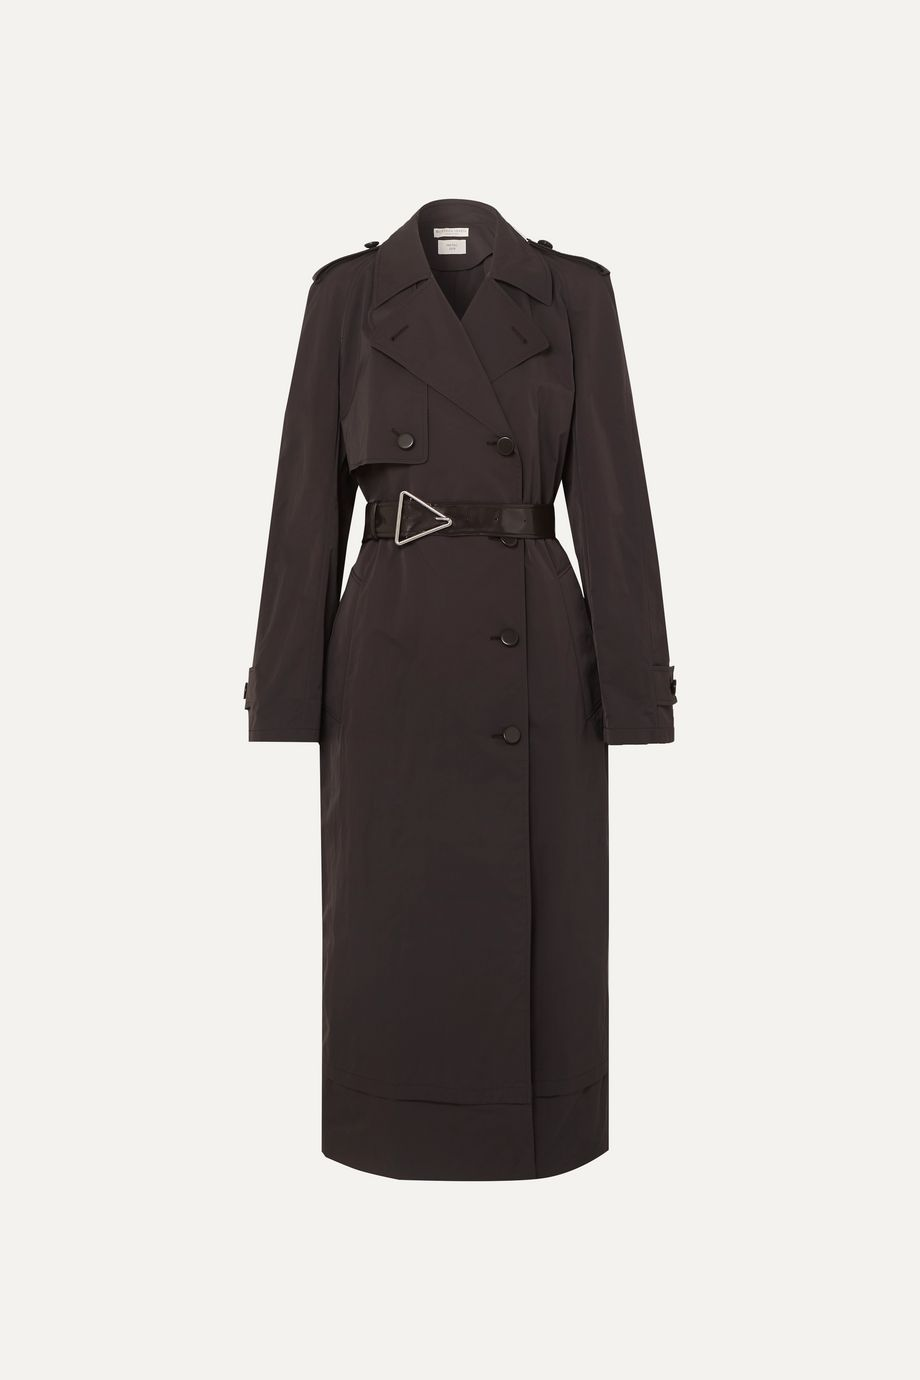 Bottega Veneta Belted double-breasted shell trench coat